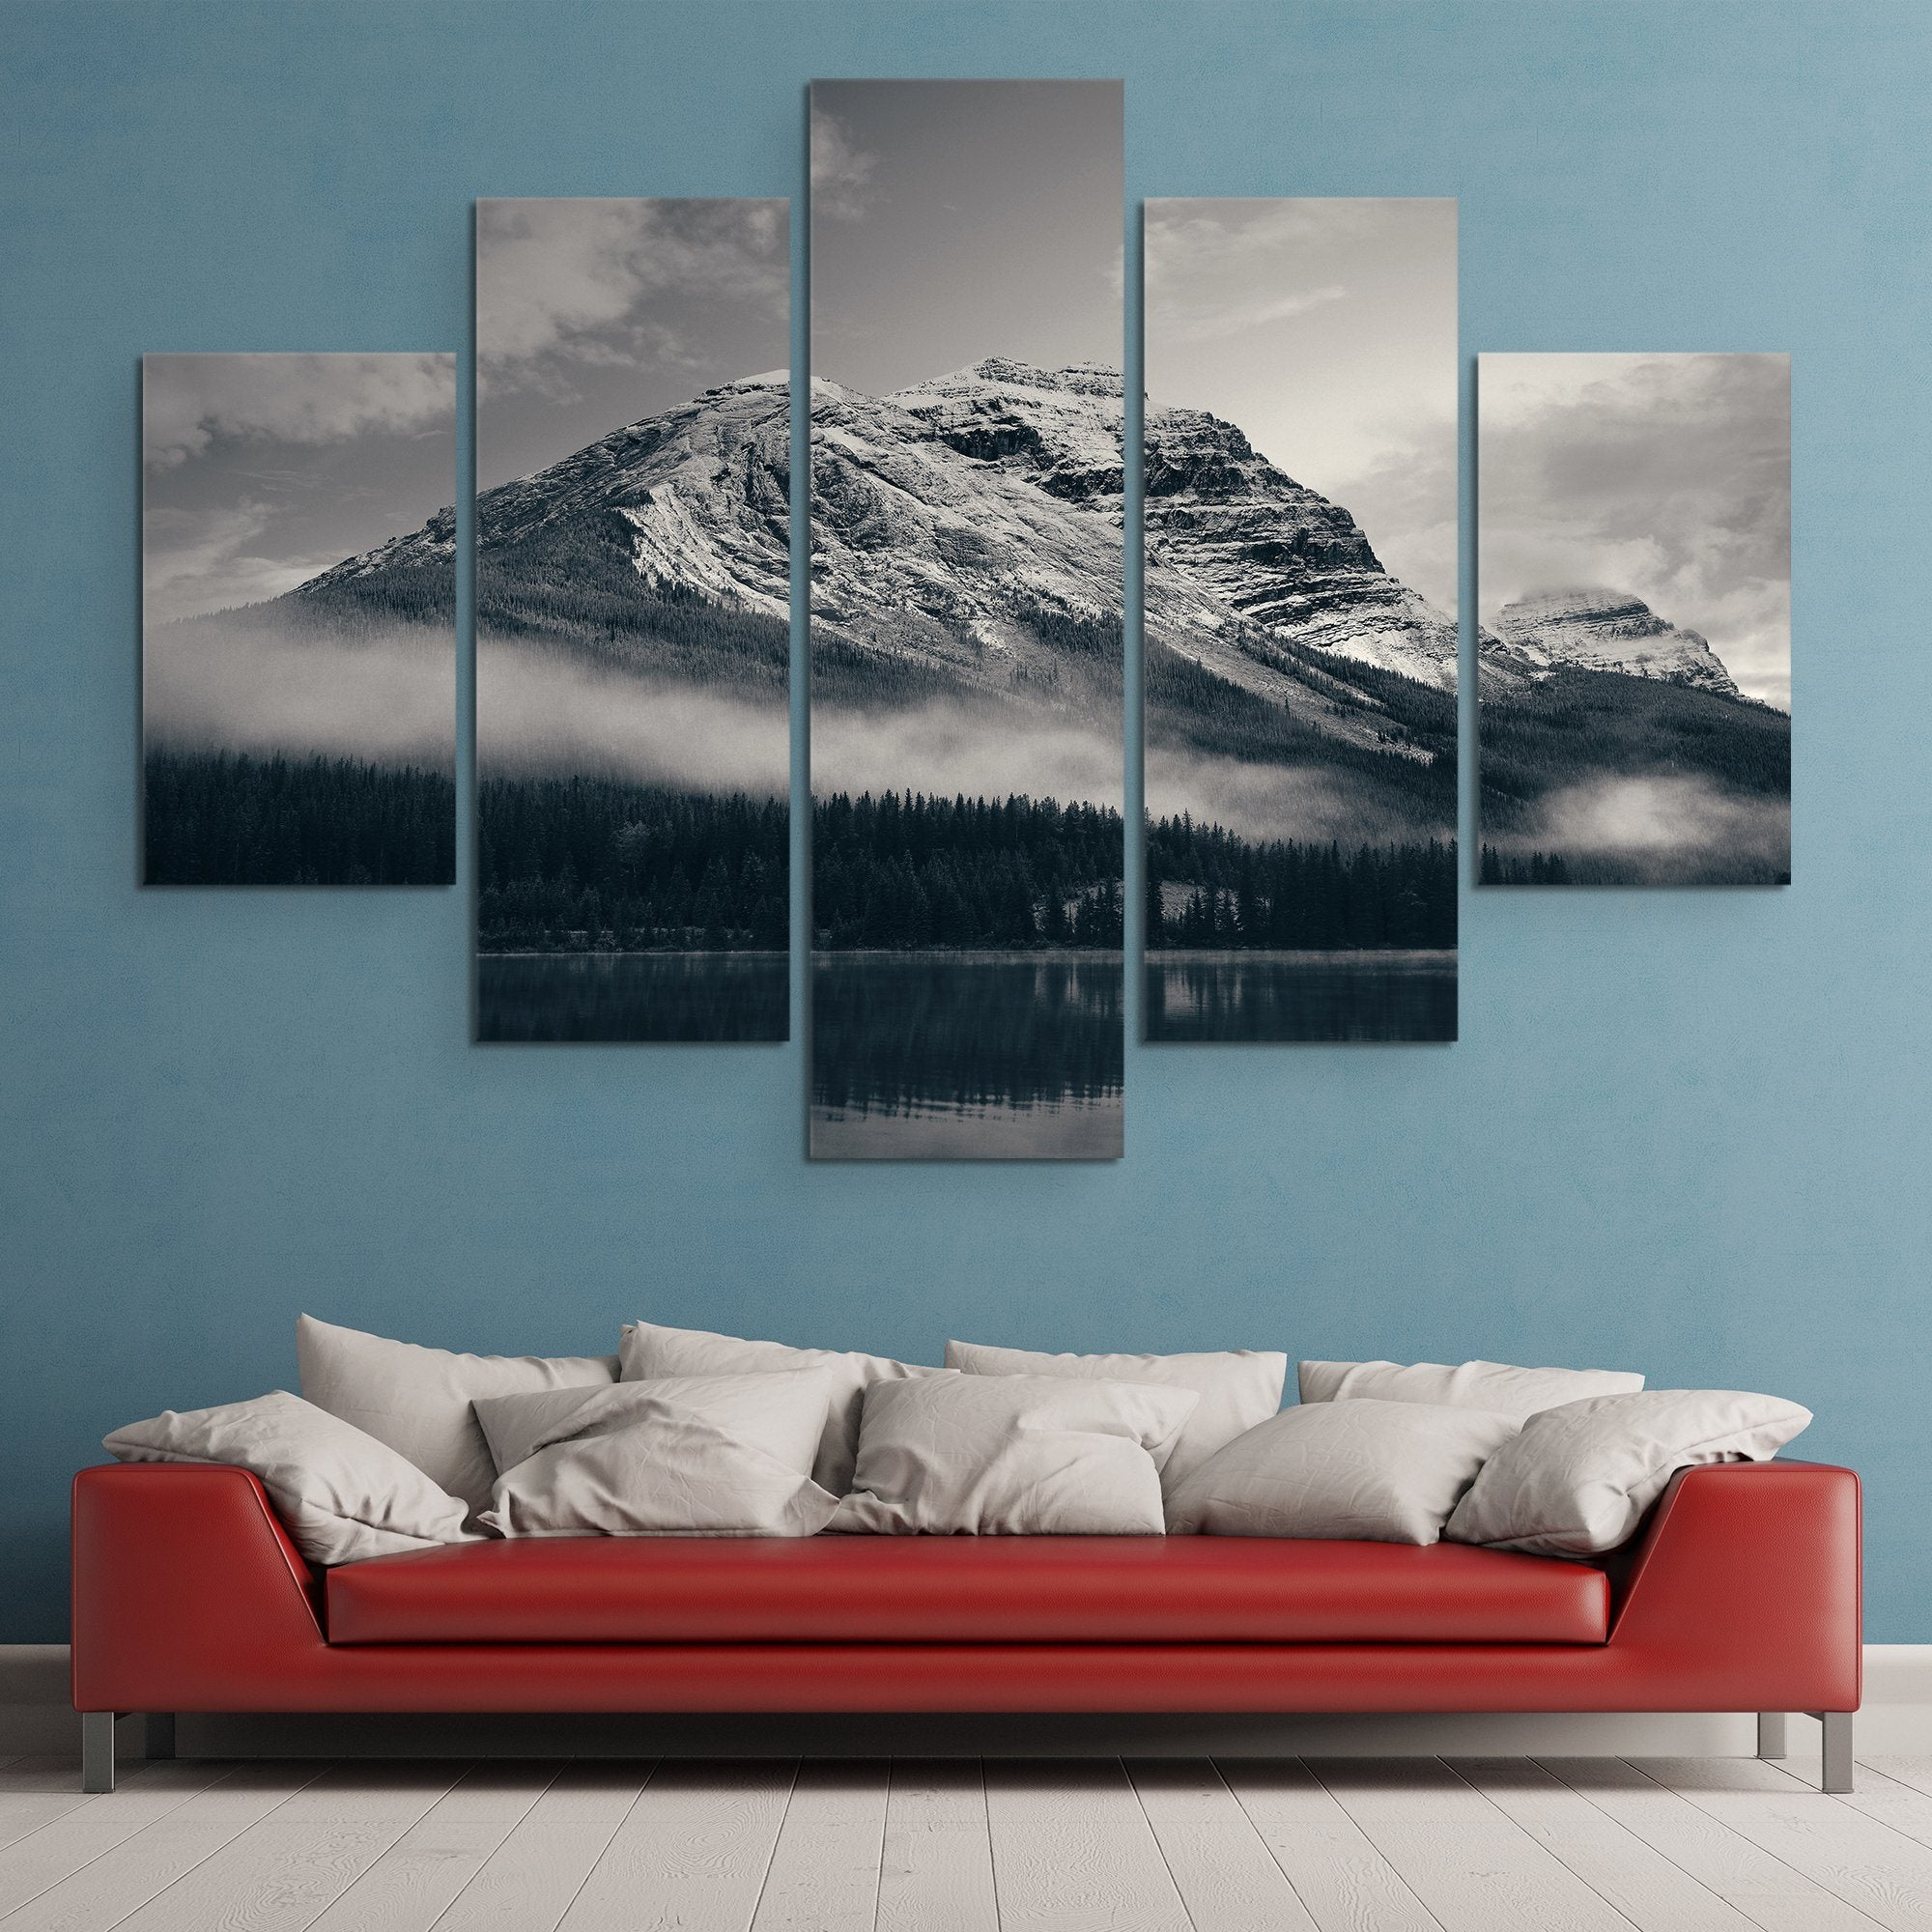 Snow Capped Mountain - Banff National Park wall art 5 piece living room art